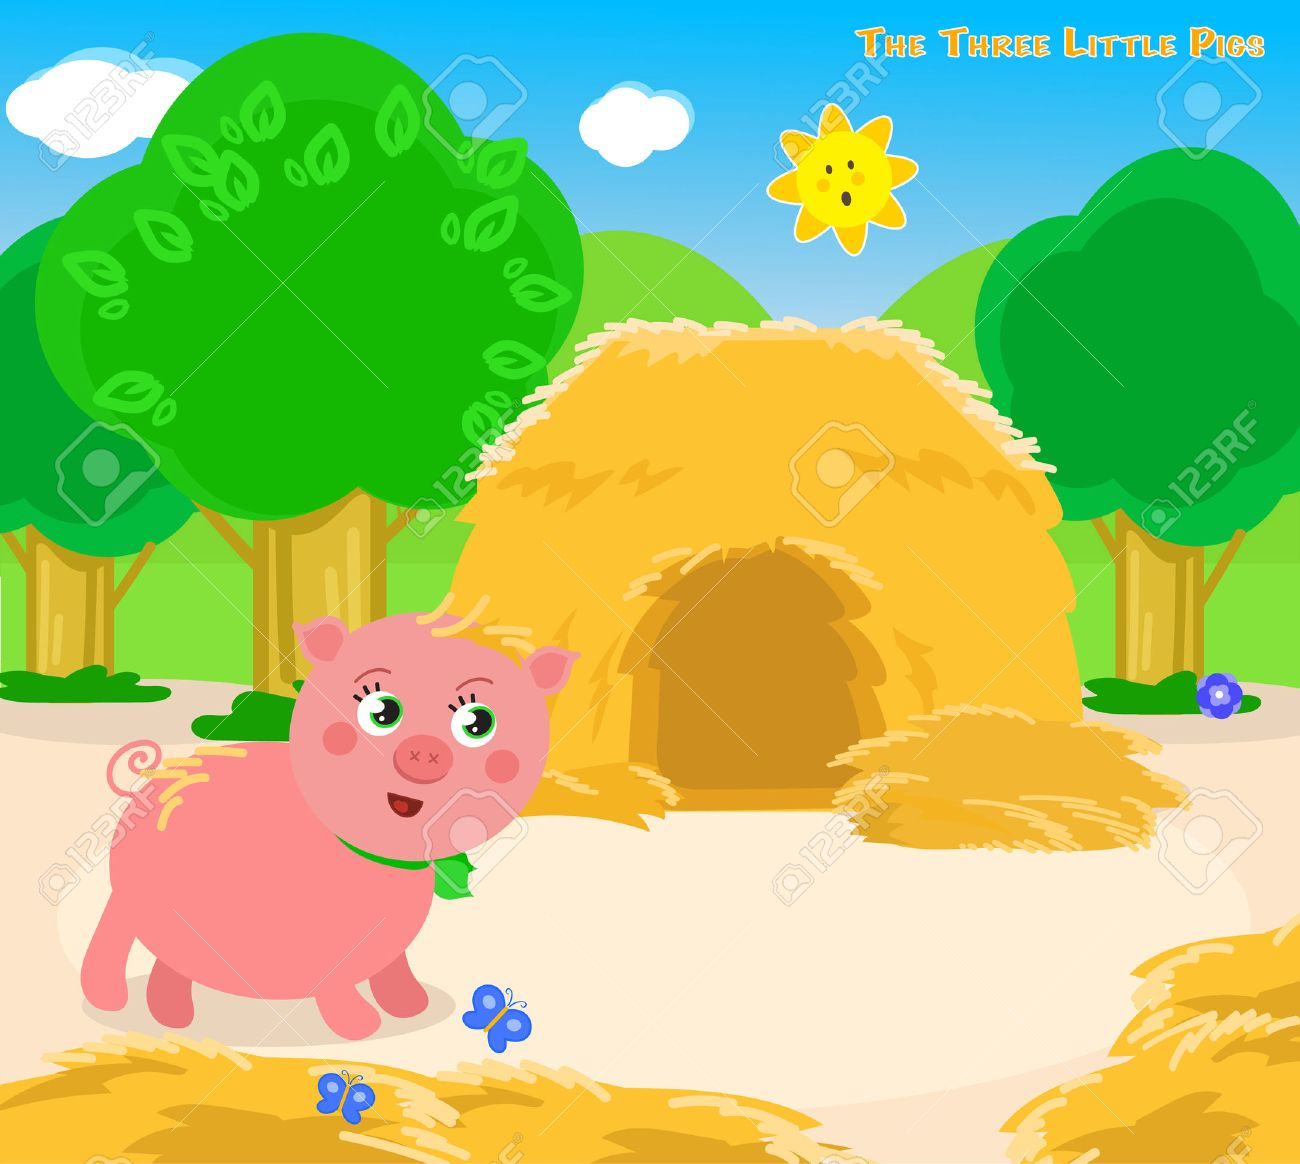 The first of the three little pigs builds a straw house. Stock Vector - 53926963